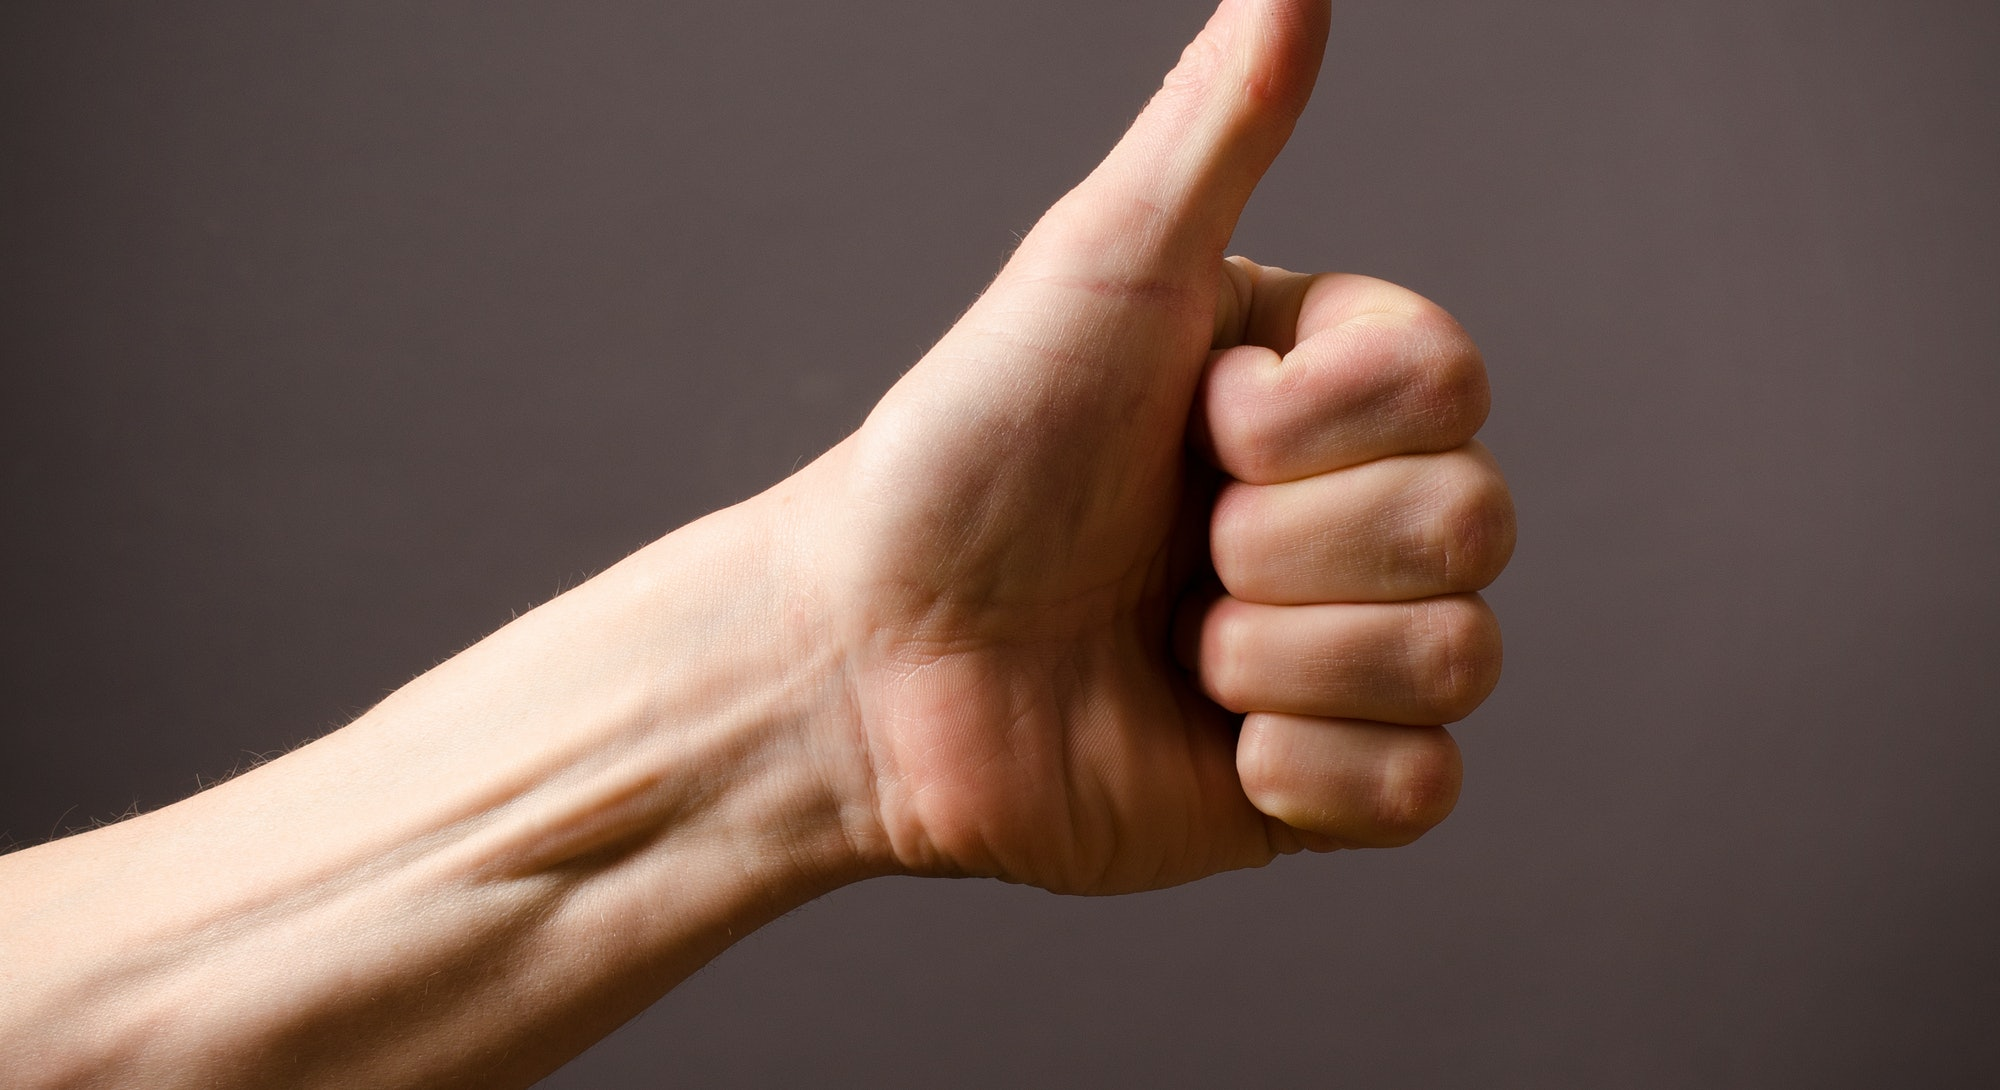 hand giving thumbs up gesture